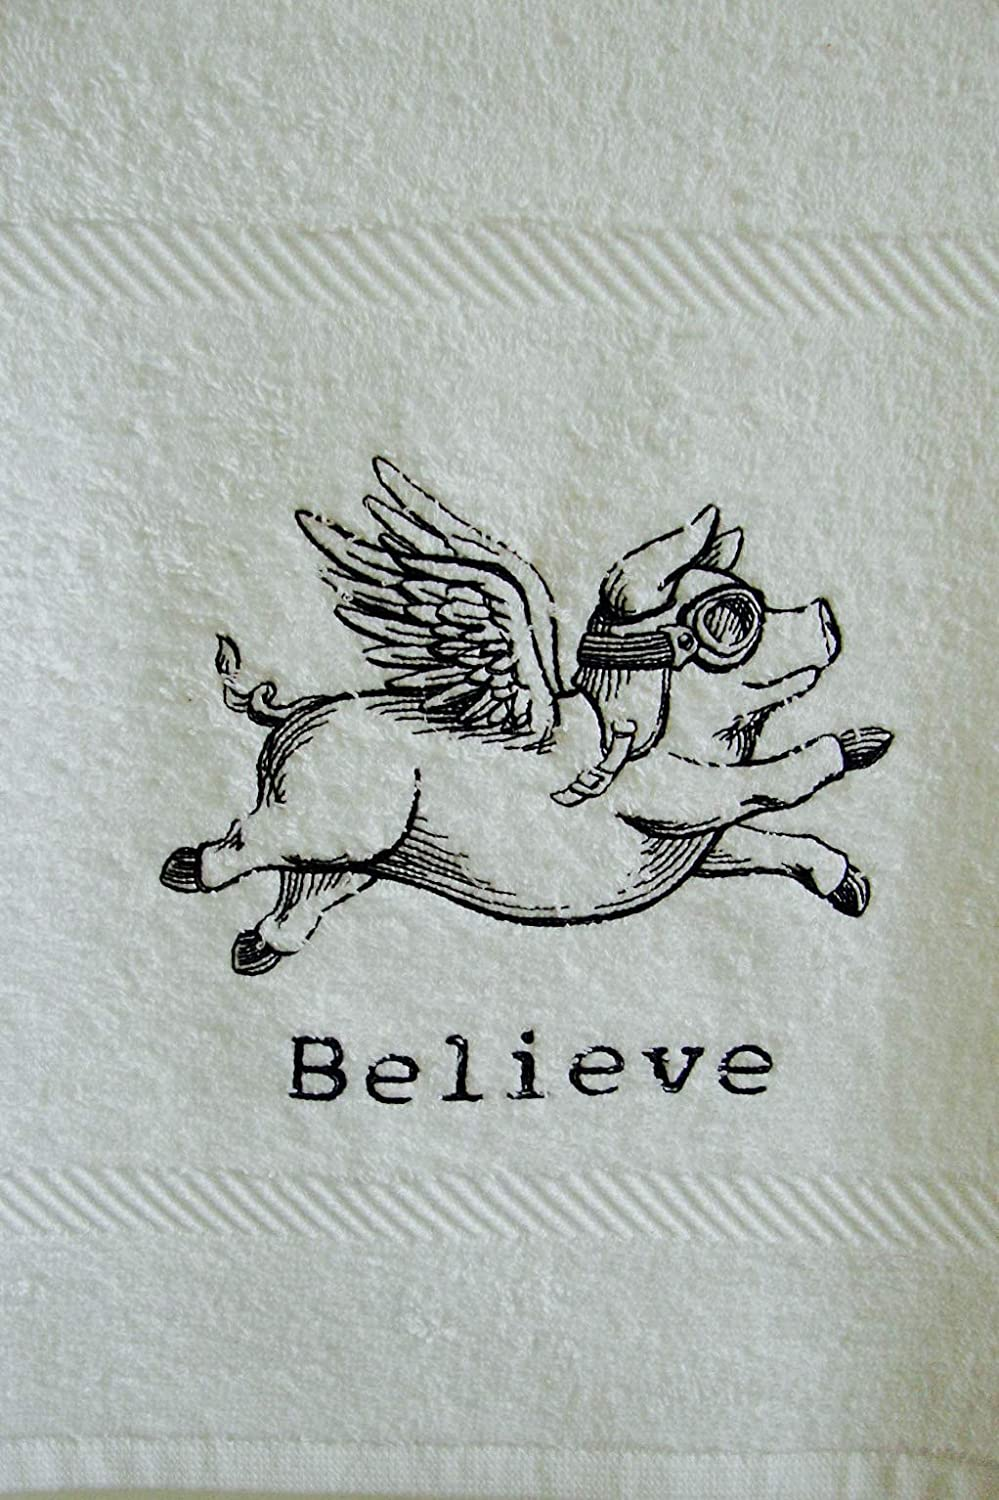 Flying Pig Believe Flannel Facecloth Embroidered Pig face cloth gift